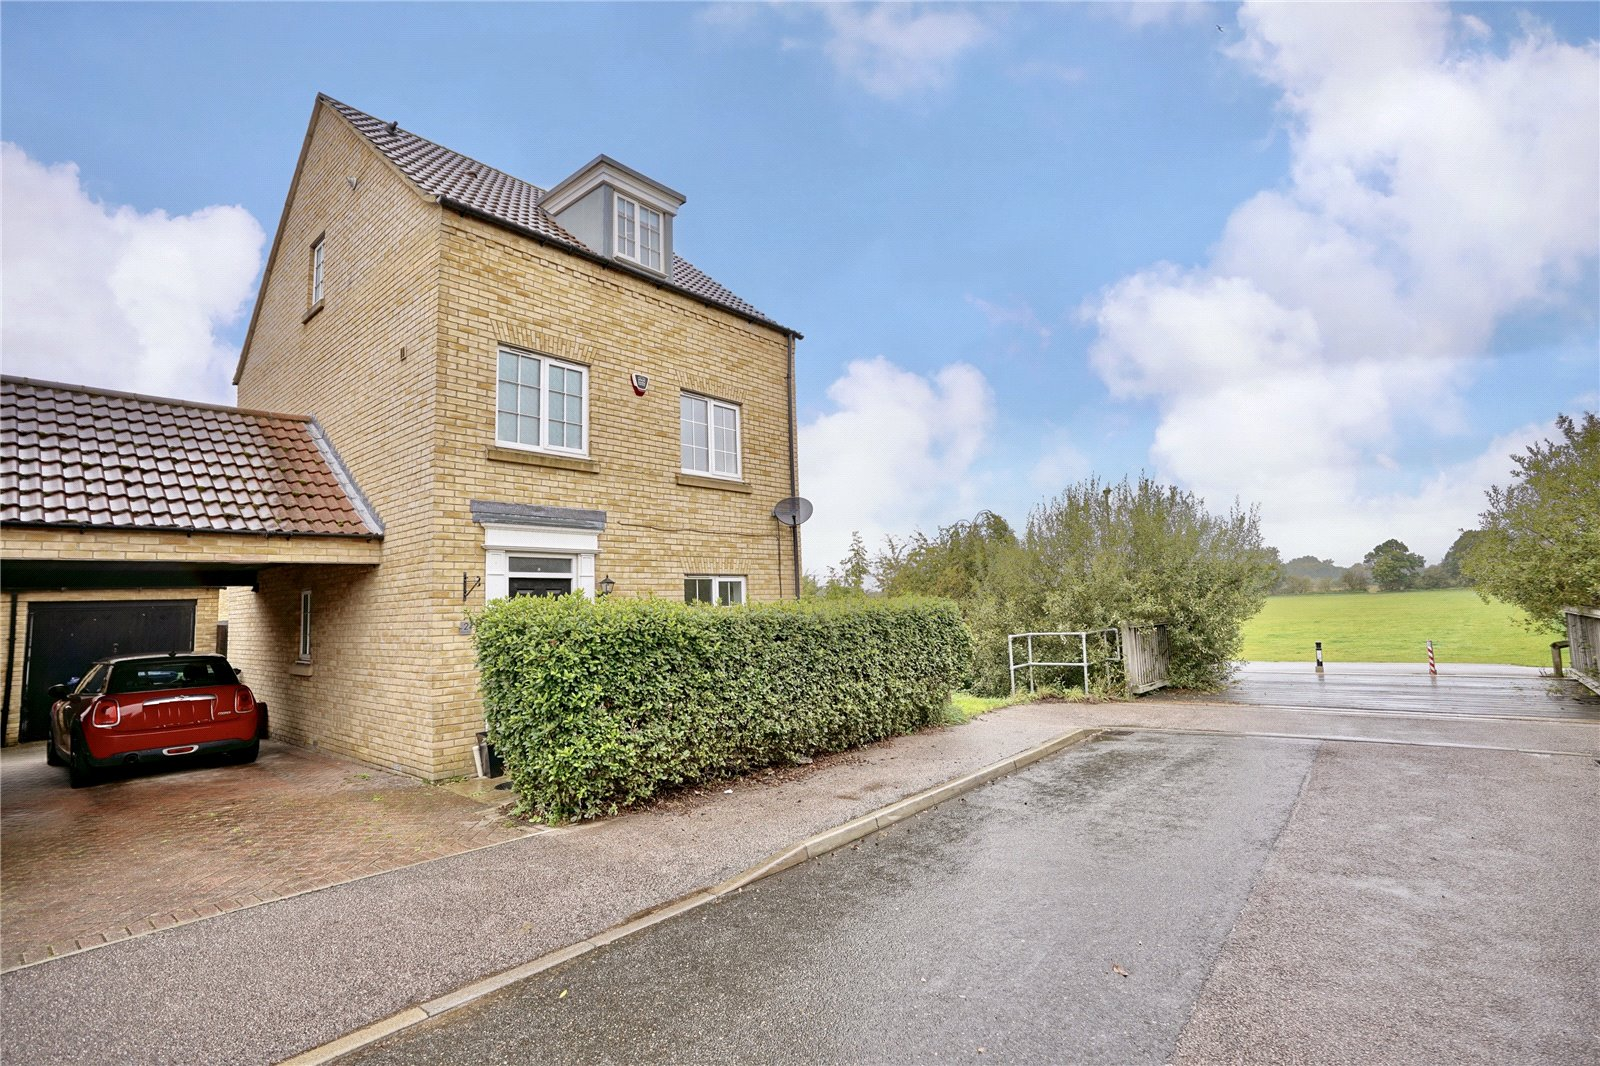 4 bed house for sale in Eynesbury, Flawn Way, PE19 2JT, PE19